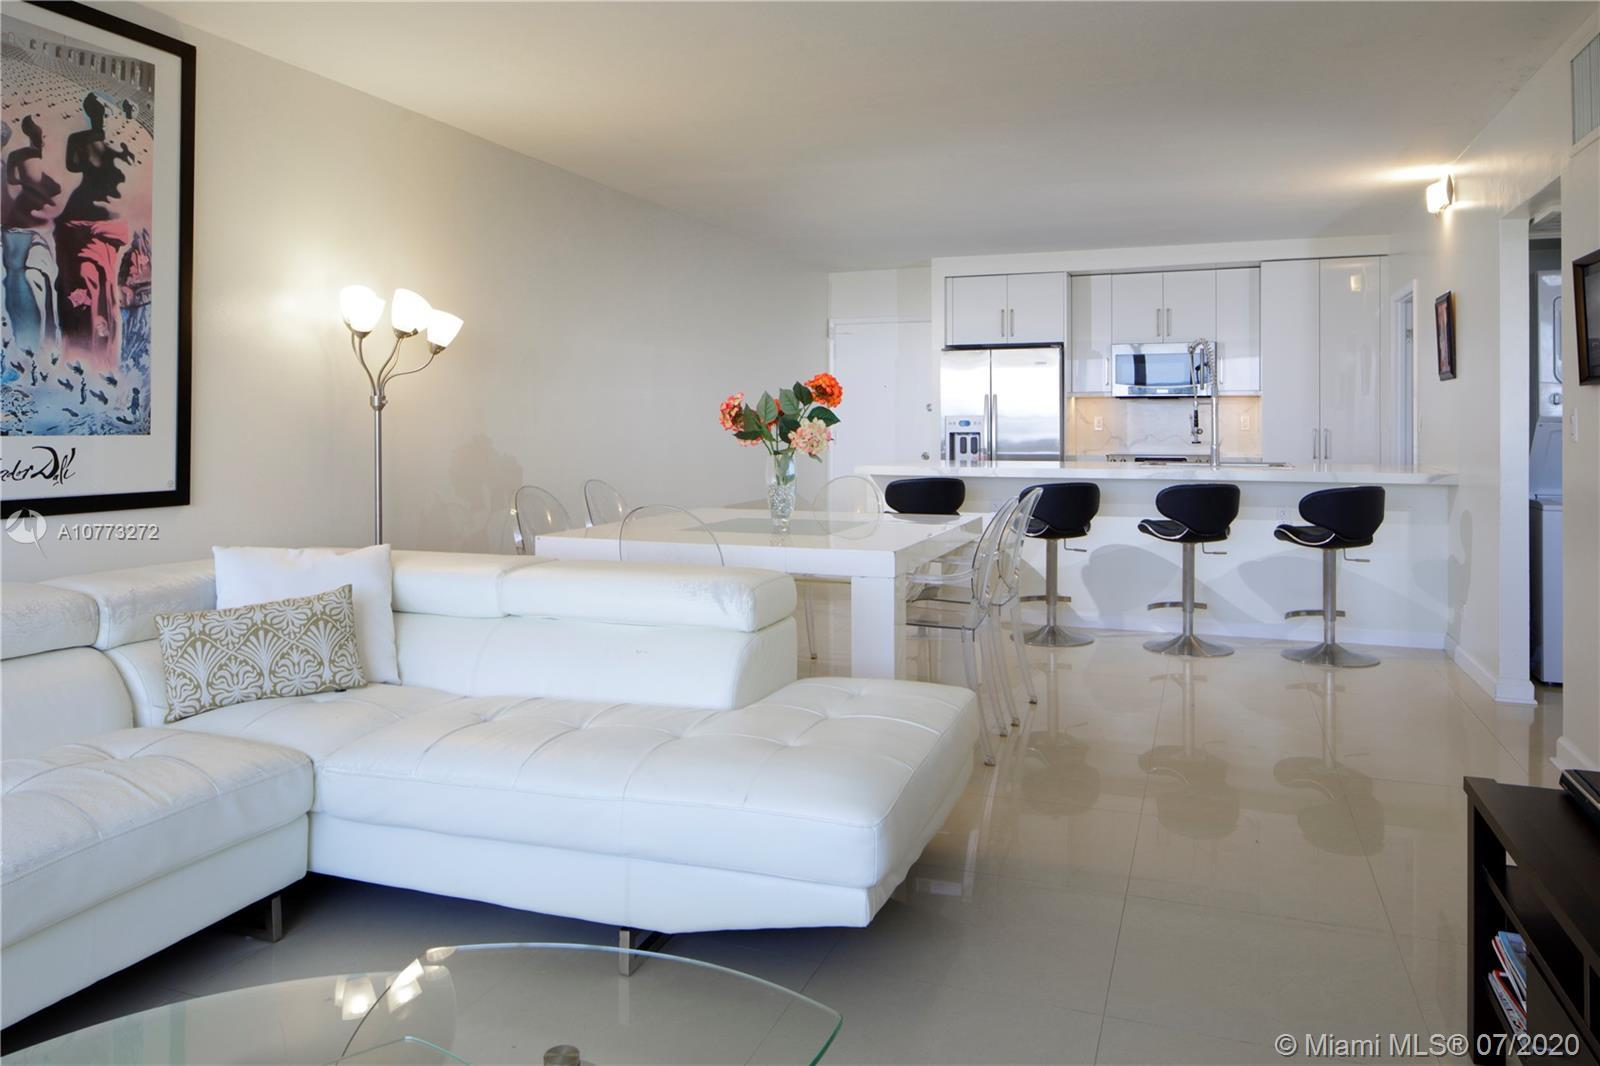 Beautifully remodeled unit with breathtaking views! Unlike any other unit in the building! Original